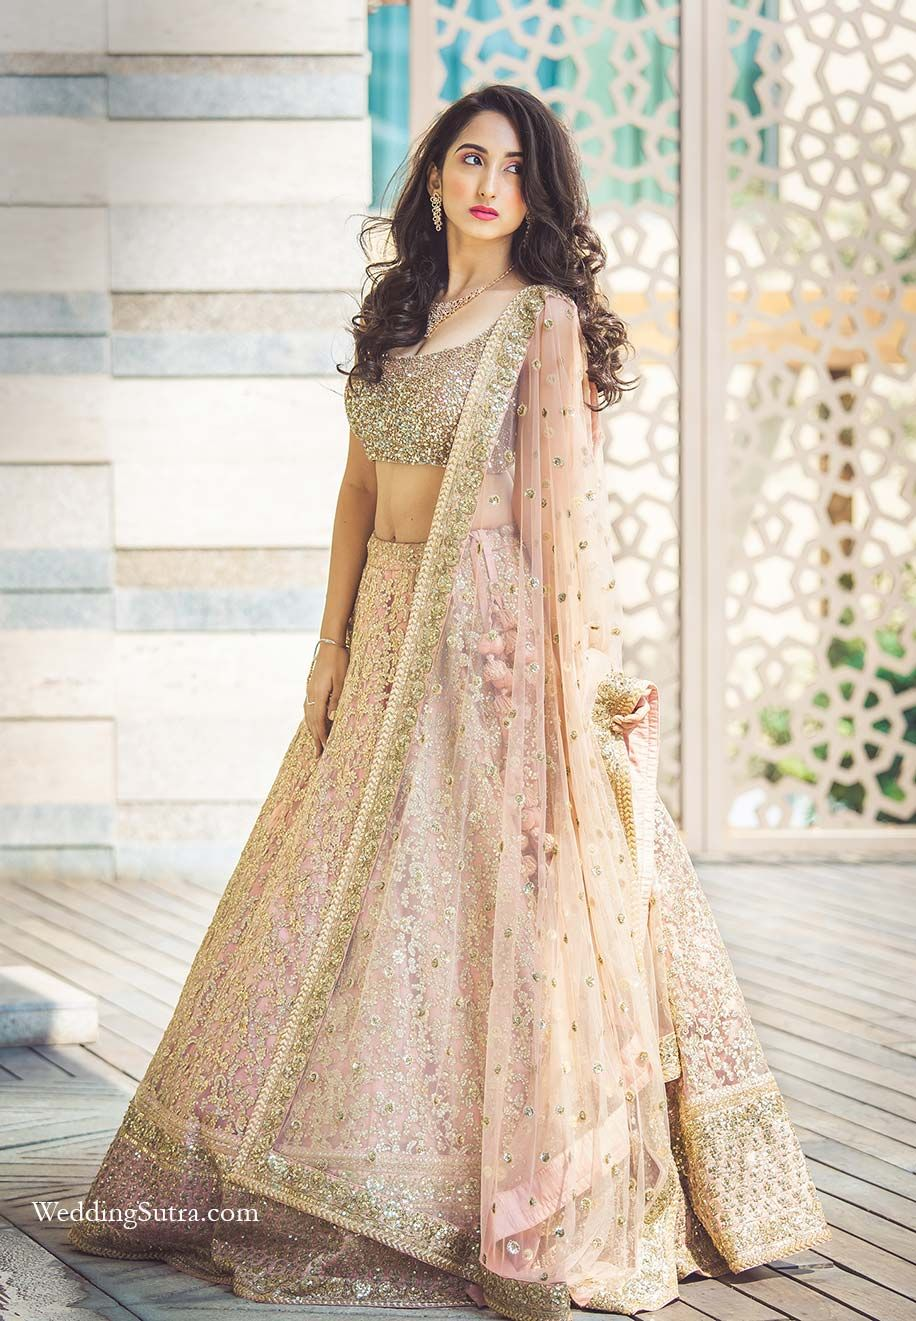 1bc1b40ed3 A beautiful Pink Lehenga completely covered with sequence by Sabyasachi at  WeddingSutra on Location. #